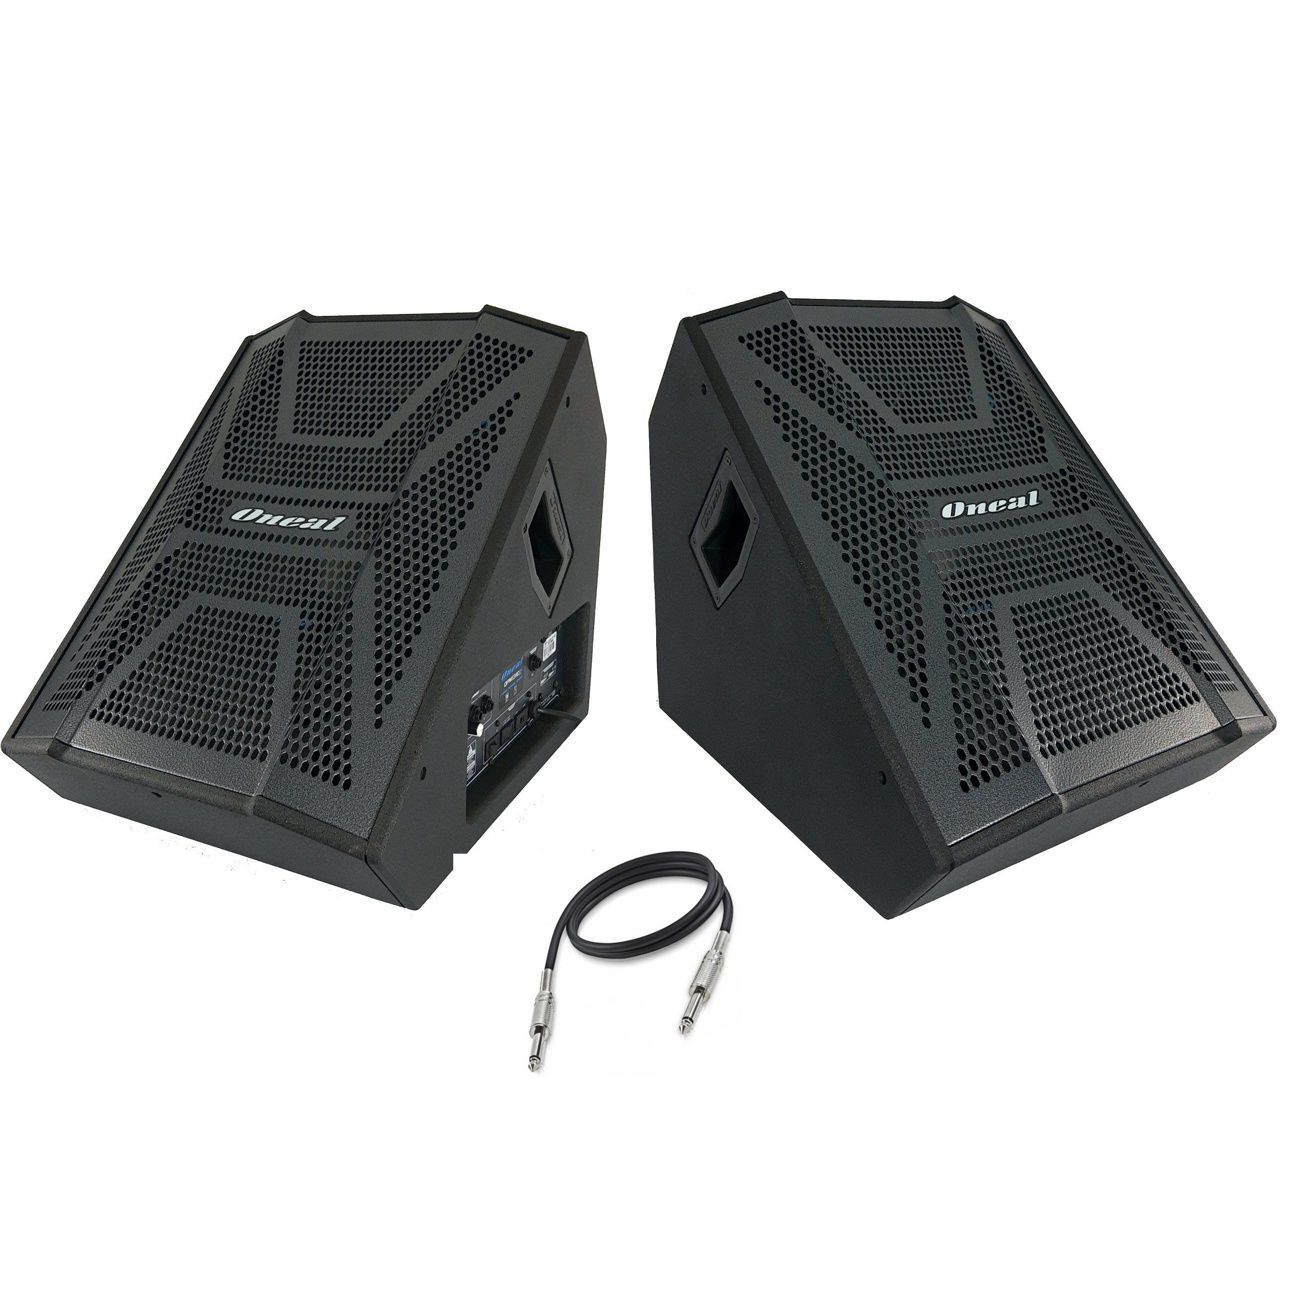 Kit Monitor Palco Ativo Passivo Oneal Opm1310x Obm1310x 200w Rms